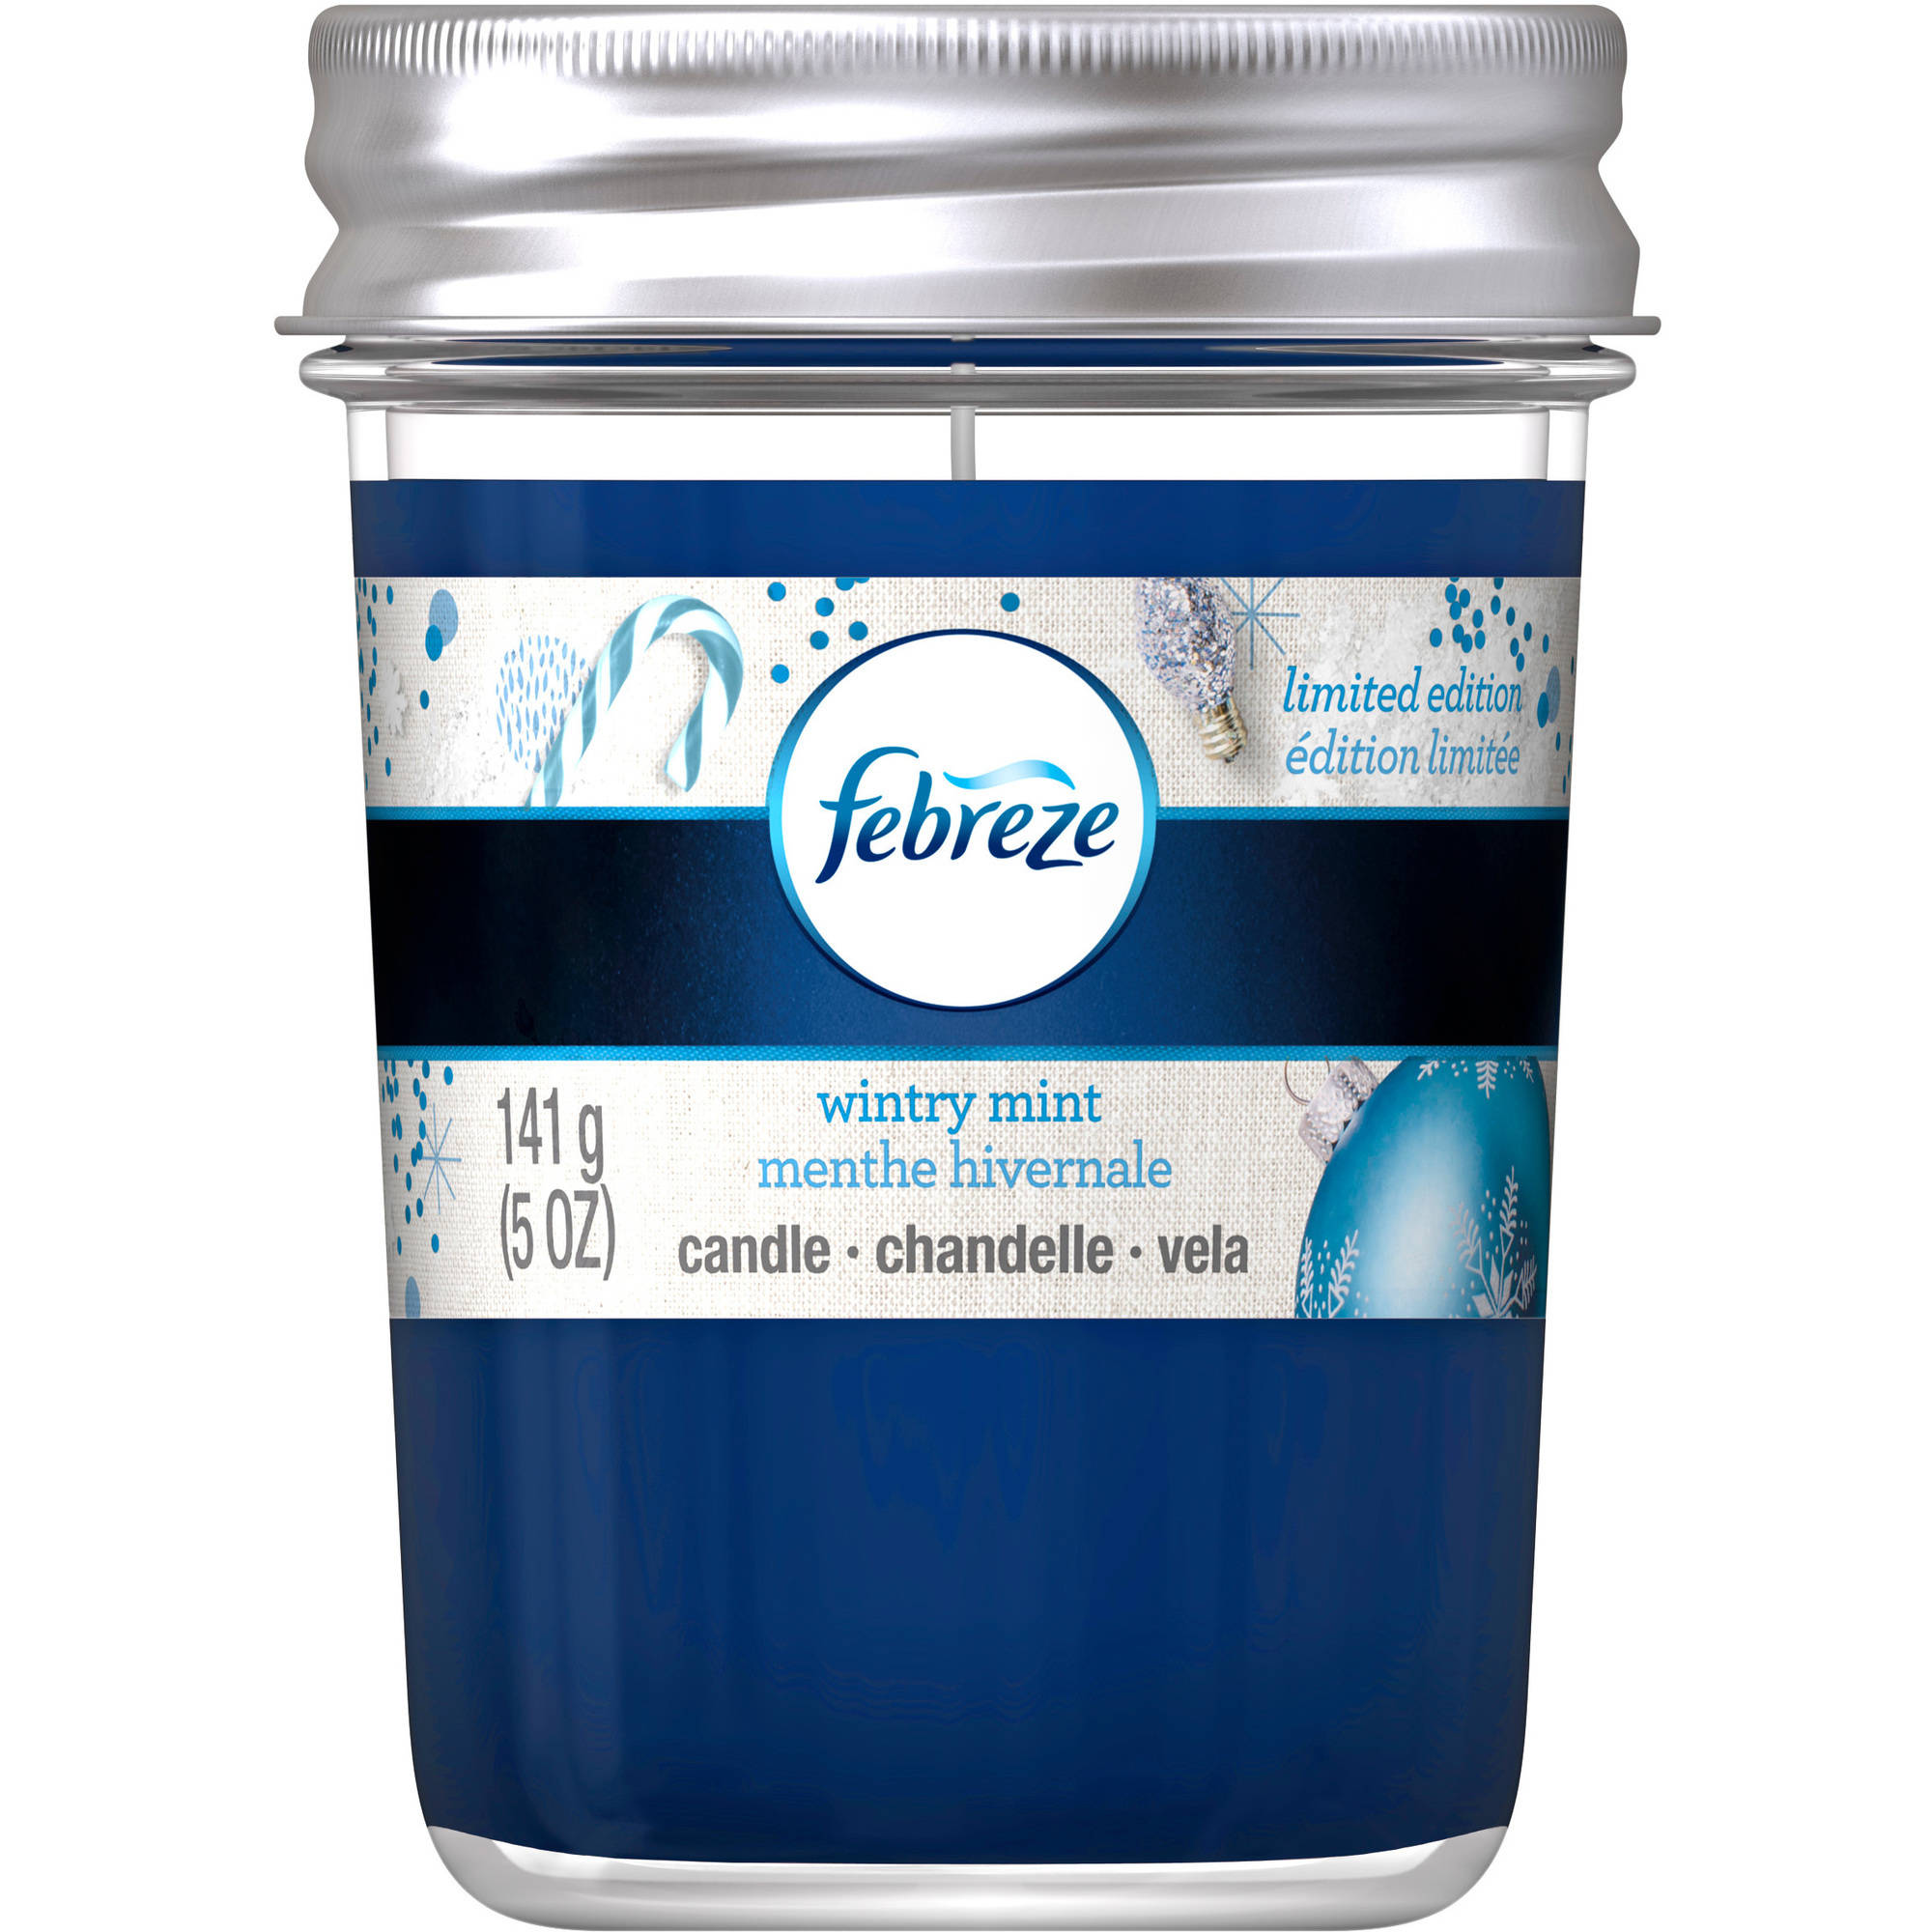 Febreze Wintry Mint Air Freshener Candle, 5 oz